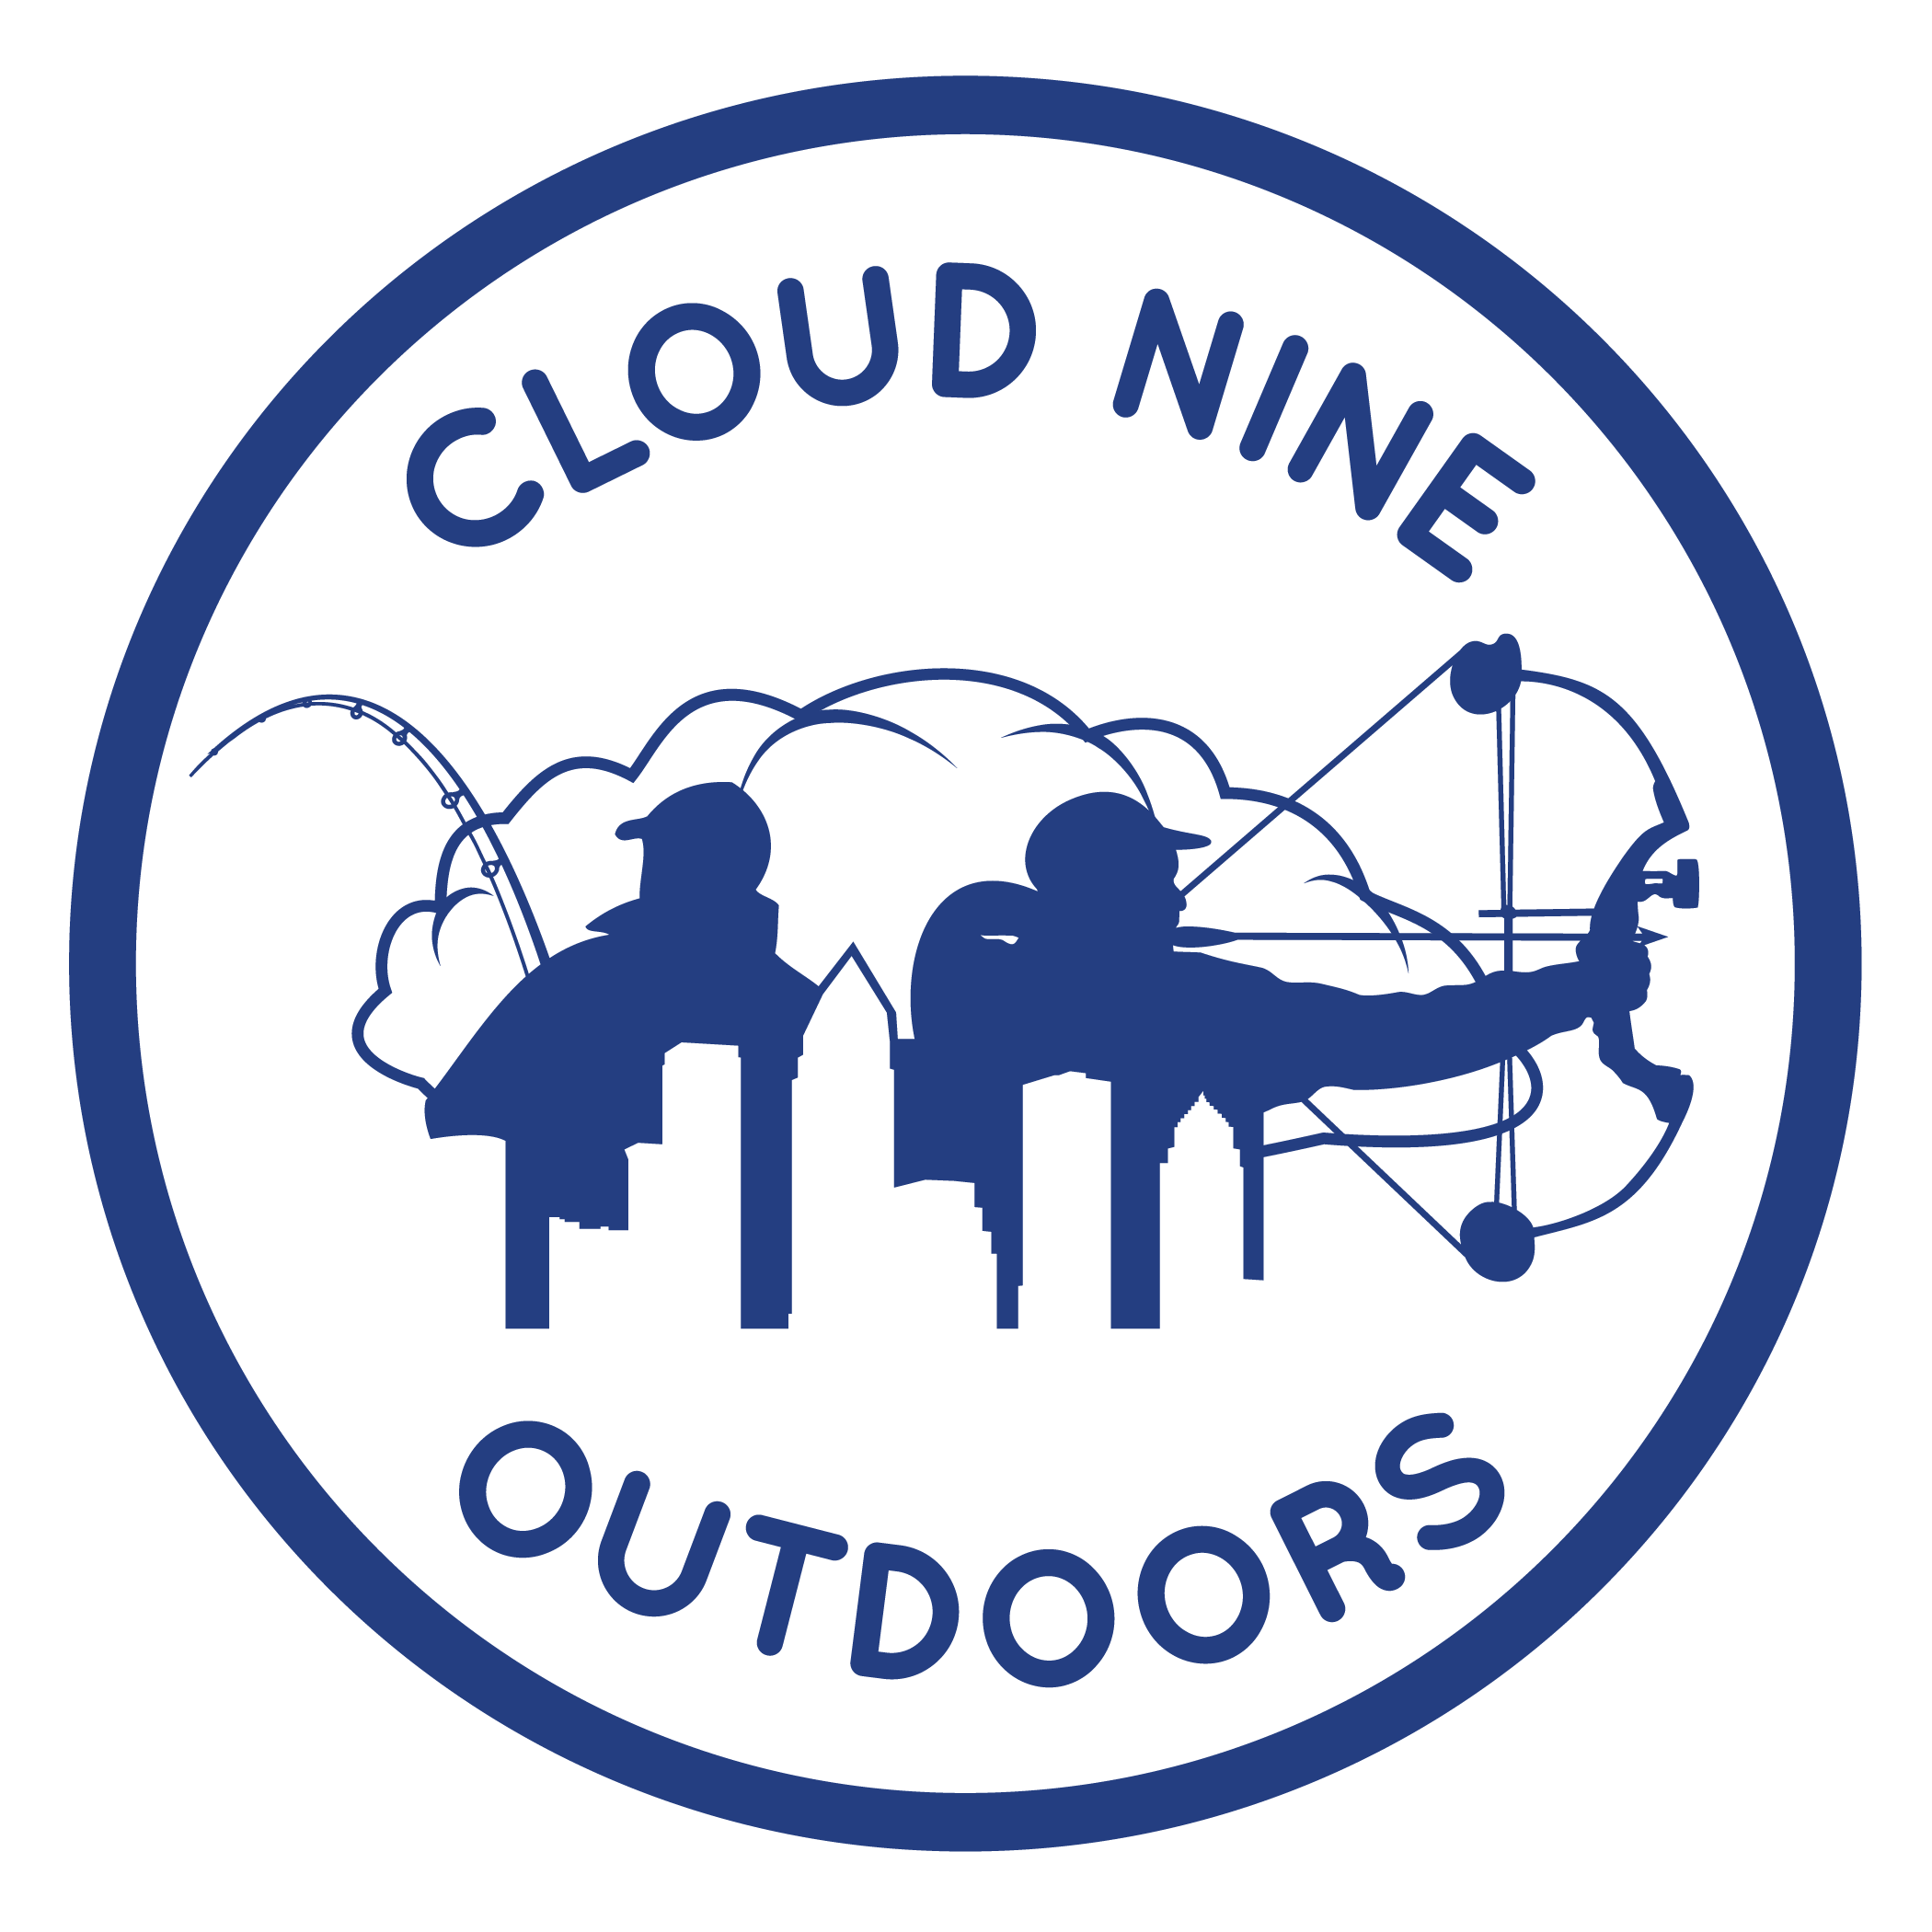 Cloud Nine Outdoors